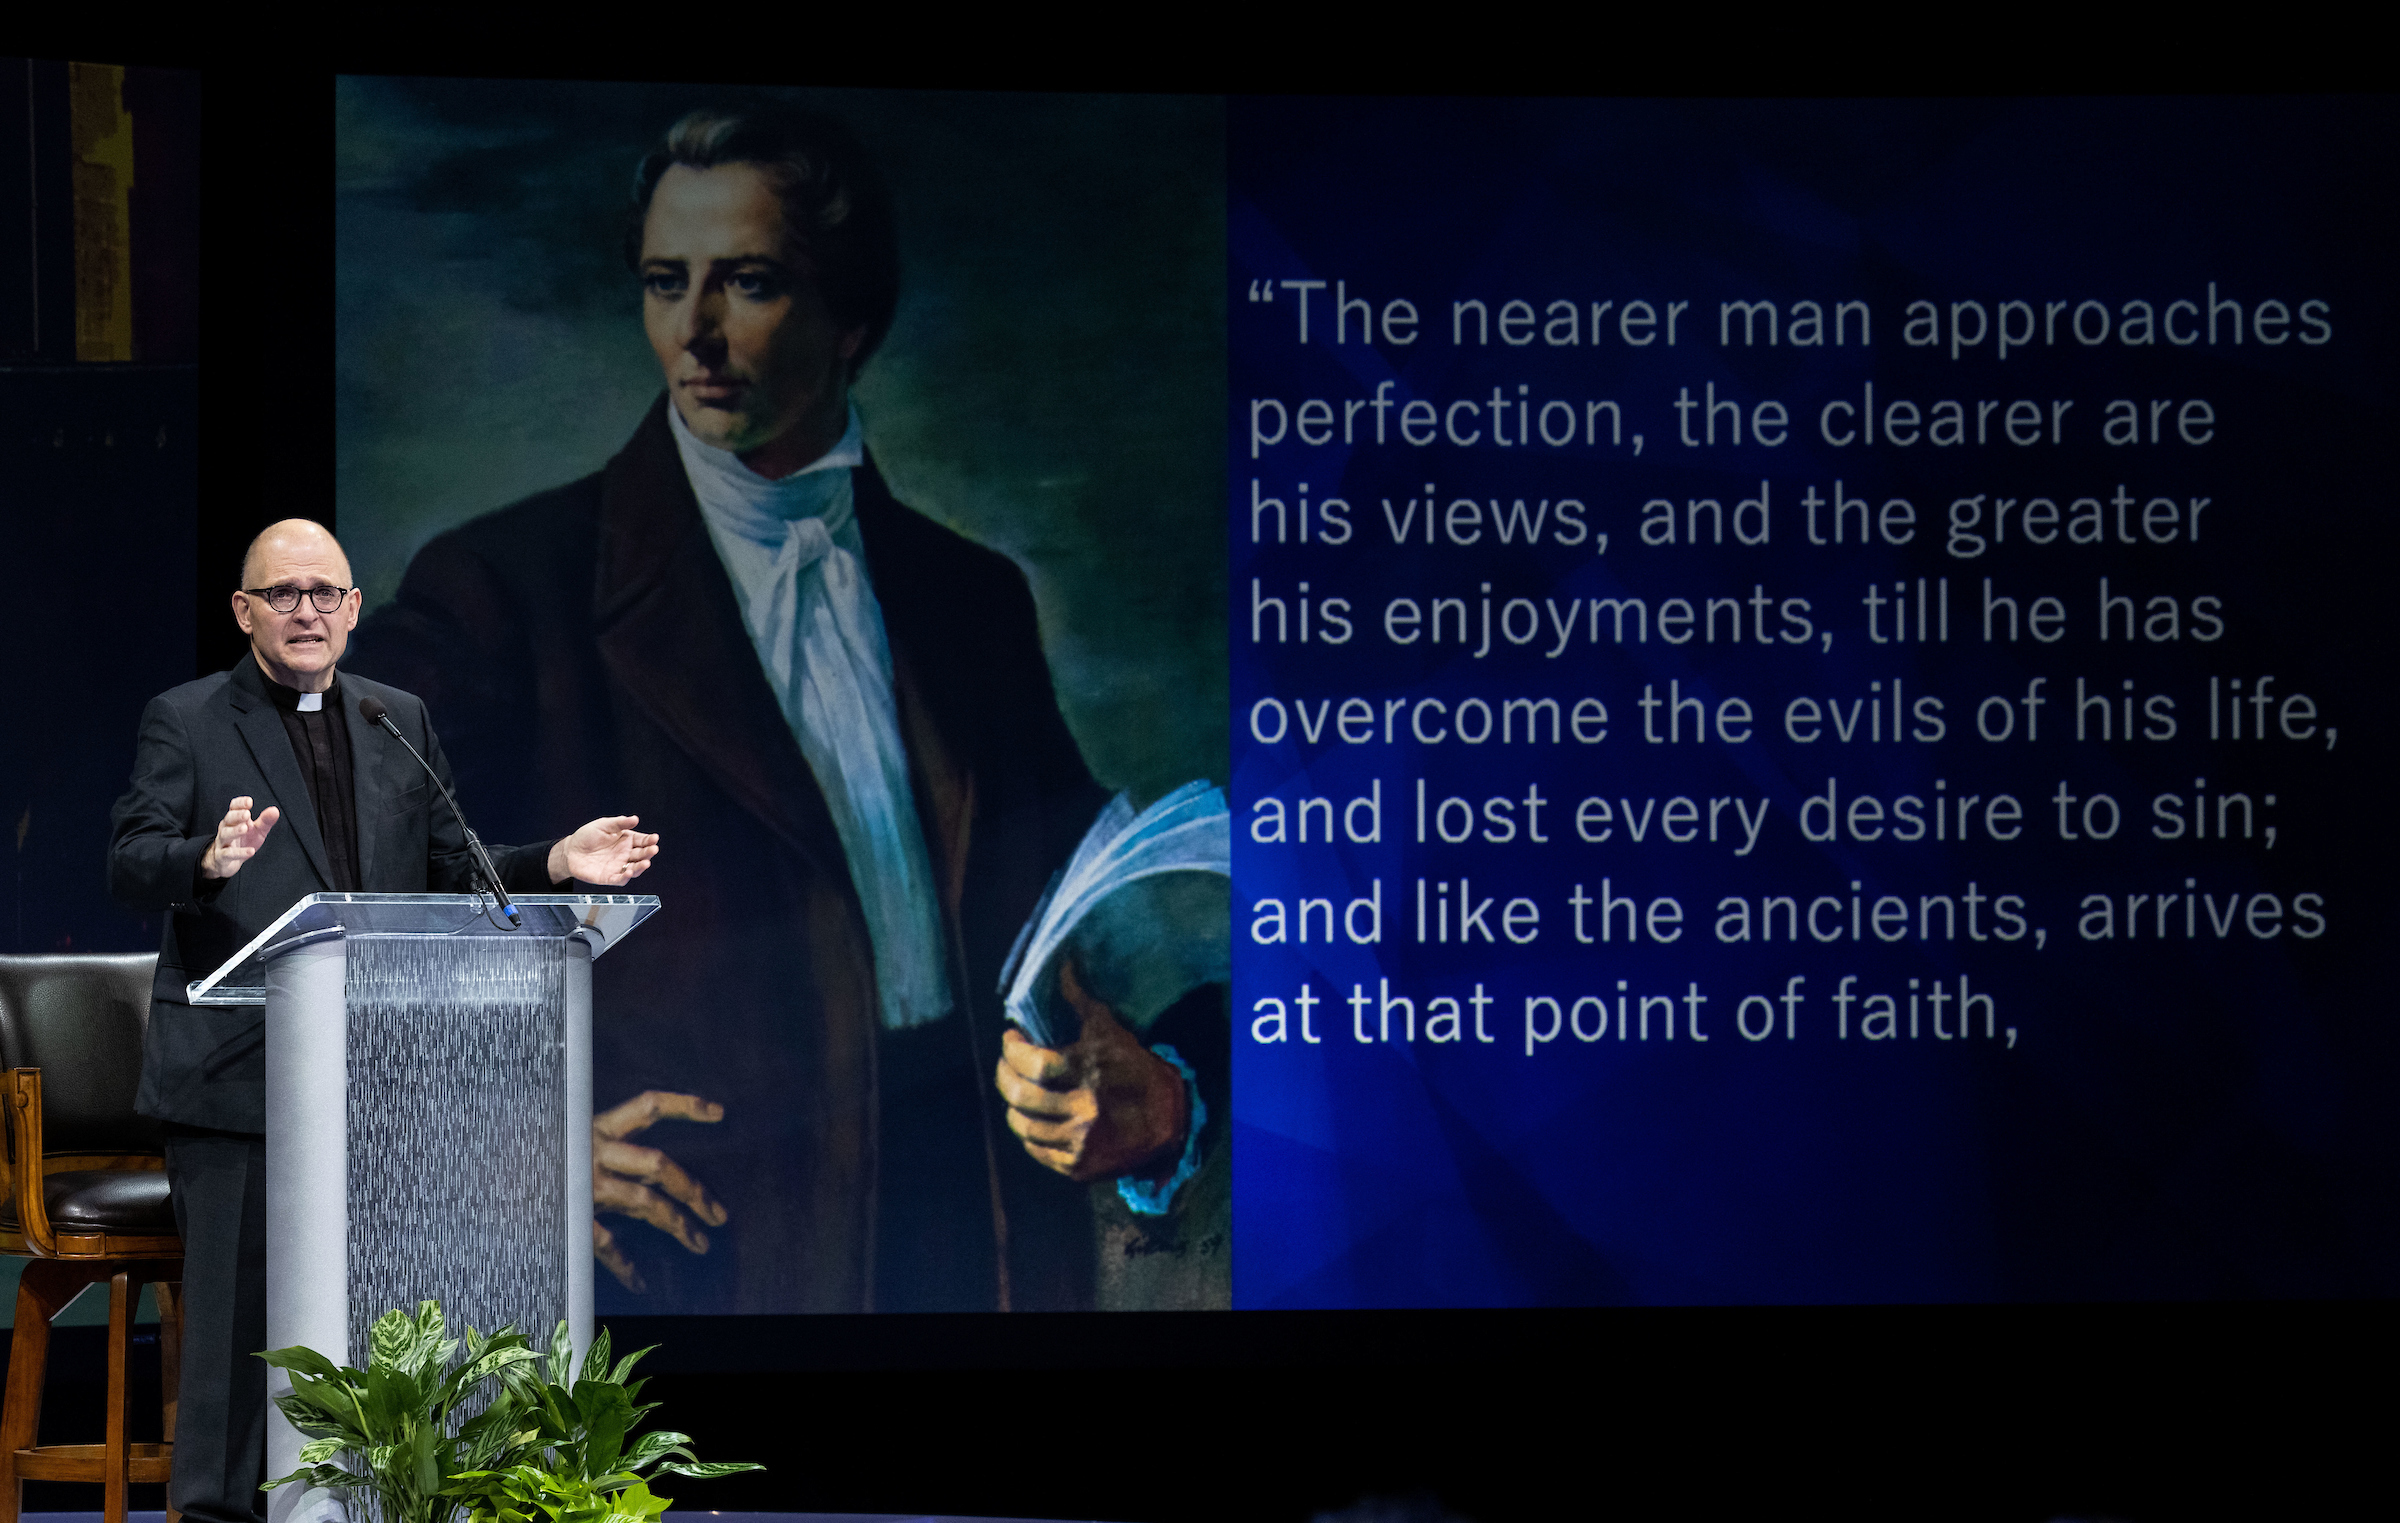 The Rev. Dr. Andrew Teal delivers a forum address at Brigham Young University in Provo, Utah.